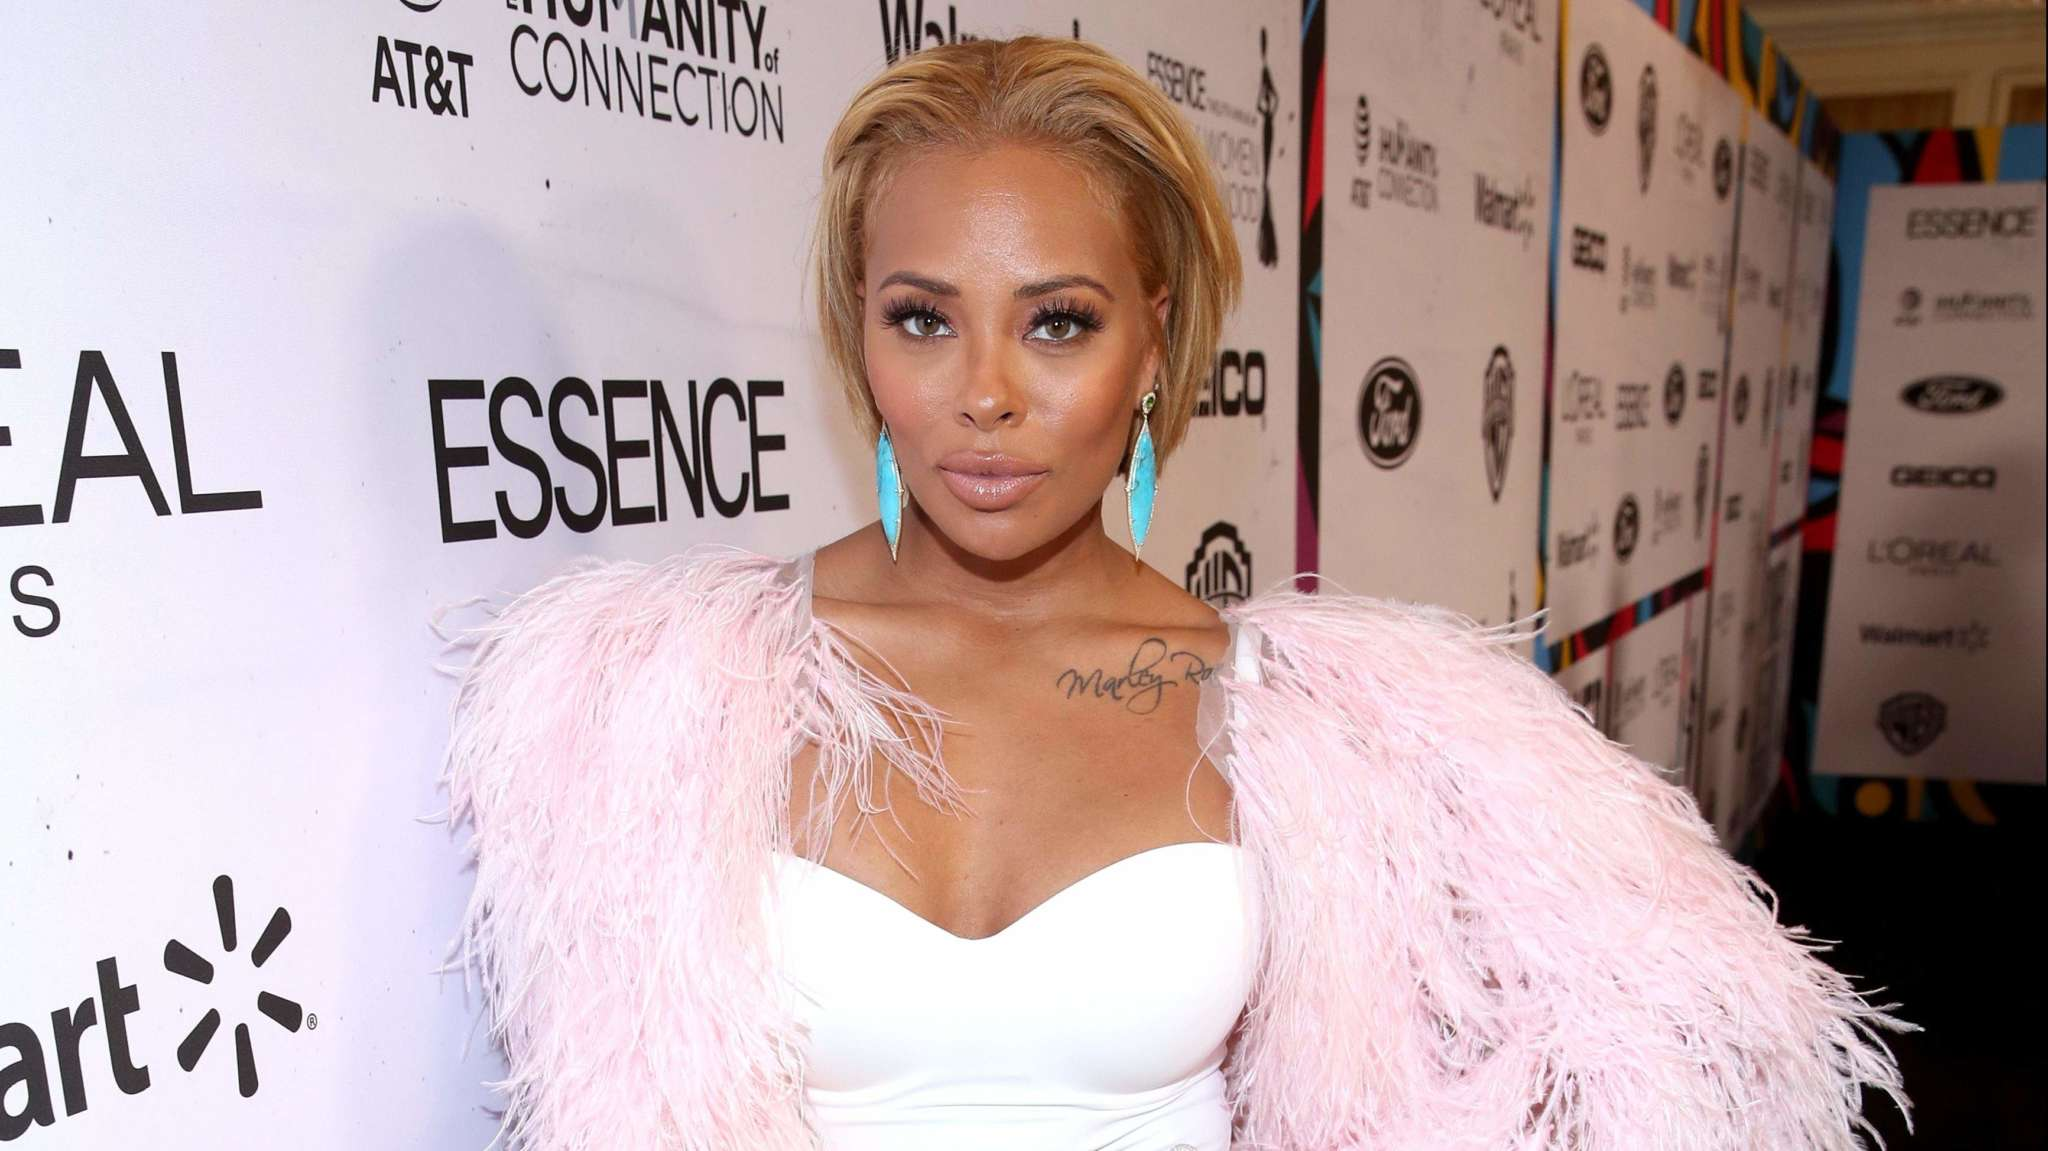 Eva Marcille Shares A Video That Has Broken Her To Tears – See The Tragedy Here